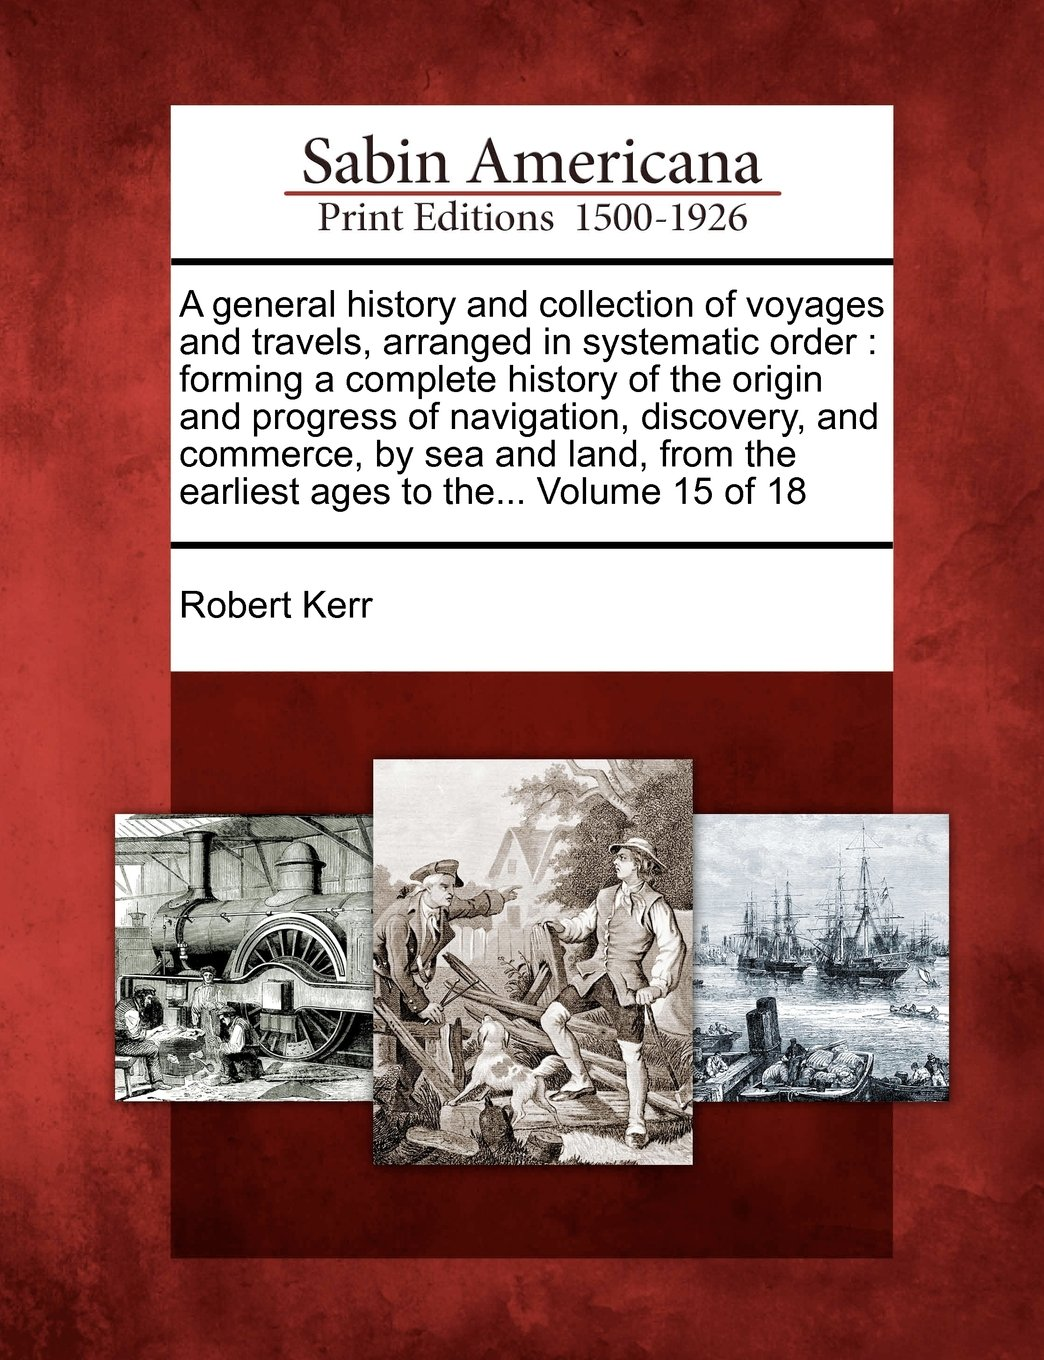 A general history and collection of voyages and travels, arranged in systematic order: forming a complete history of the origin and progress of ... the earliest ages to the... Volume 15 of 18 ebook